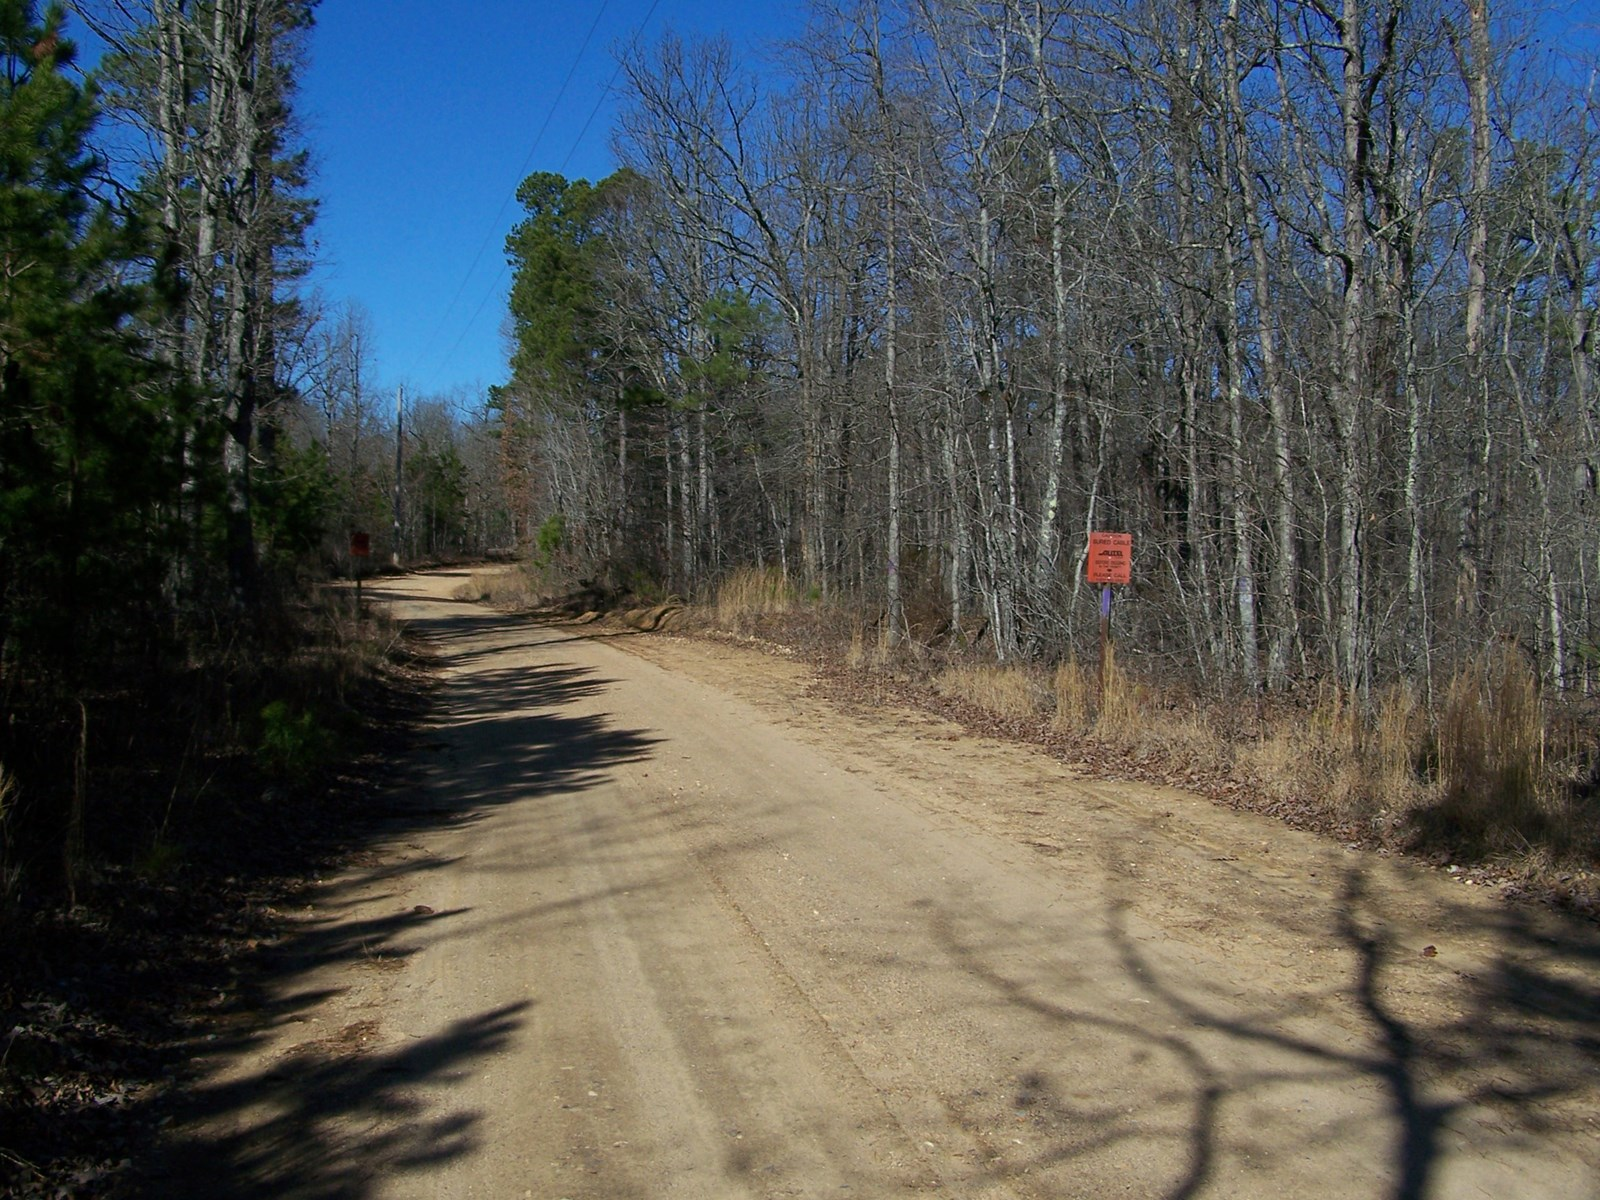 20 Acres Hunting Land For Sale in Arkansas Ozarks